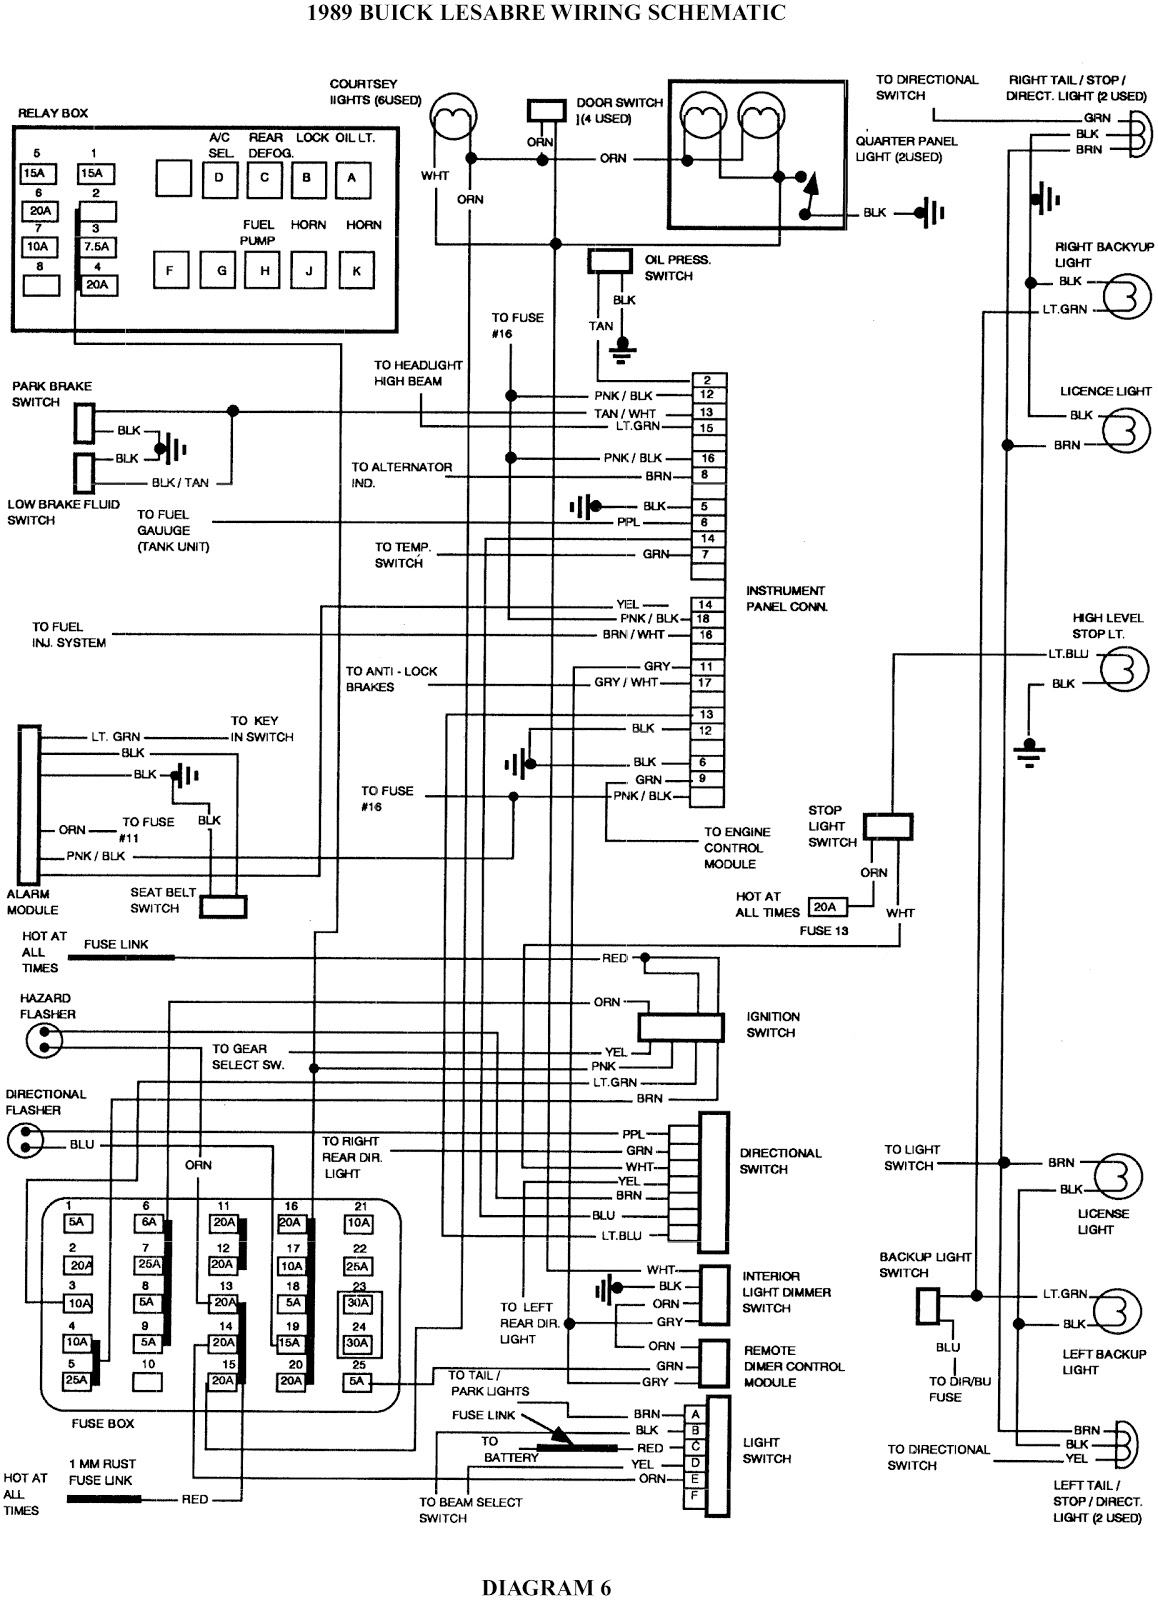 1997 Buick Lesabre Radio Wiring Diagram Venn Problems And Solutions 99 Century Wire Harness Get Free